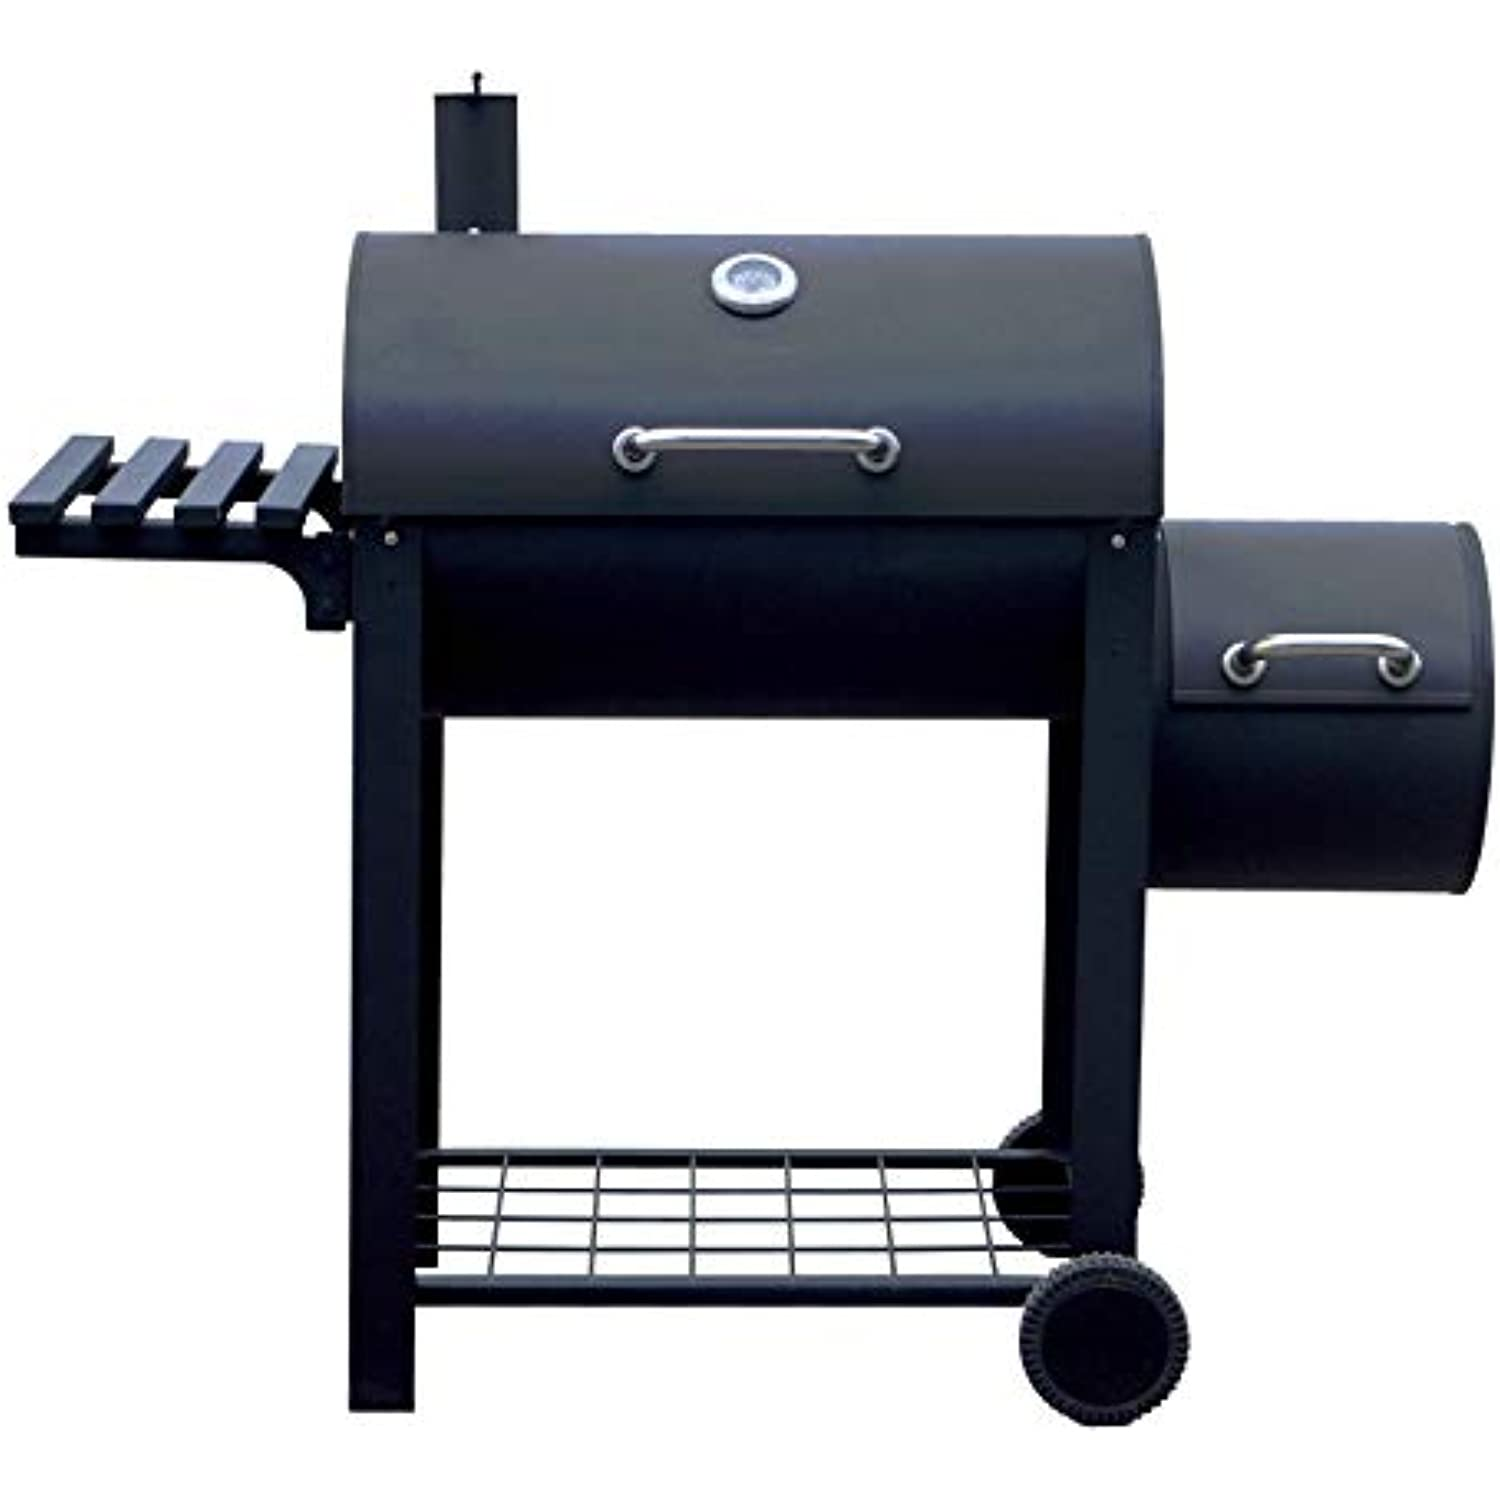 ALEKO Portable Charcoal BBQ Offset Smoker Grill with Side Fire Box and Shelf - Black